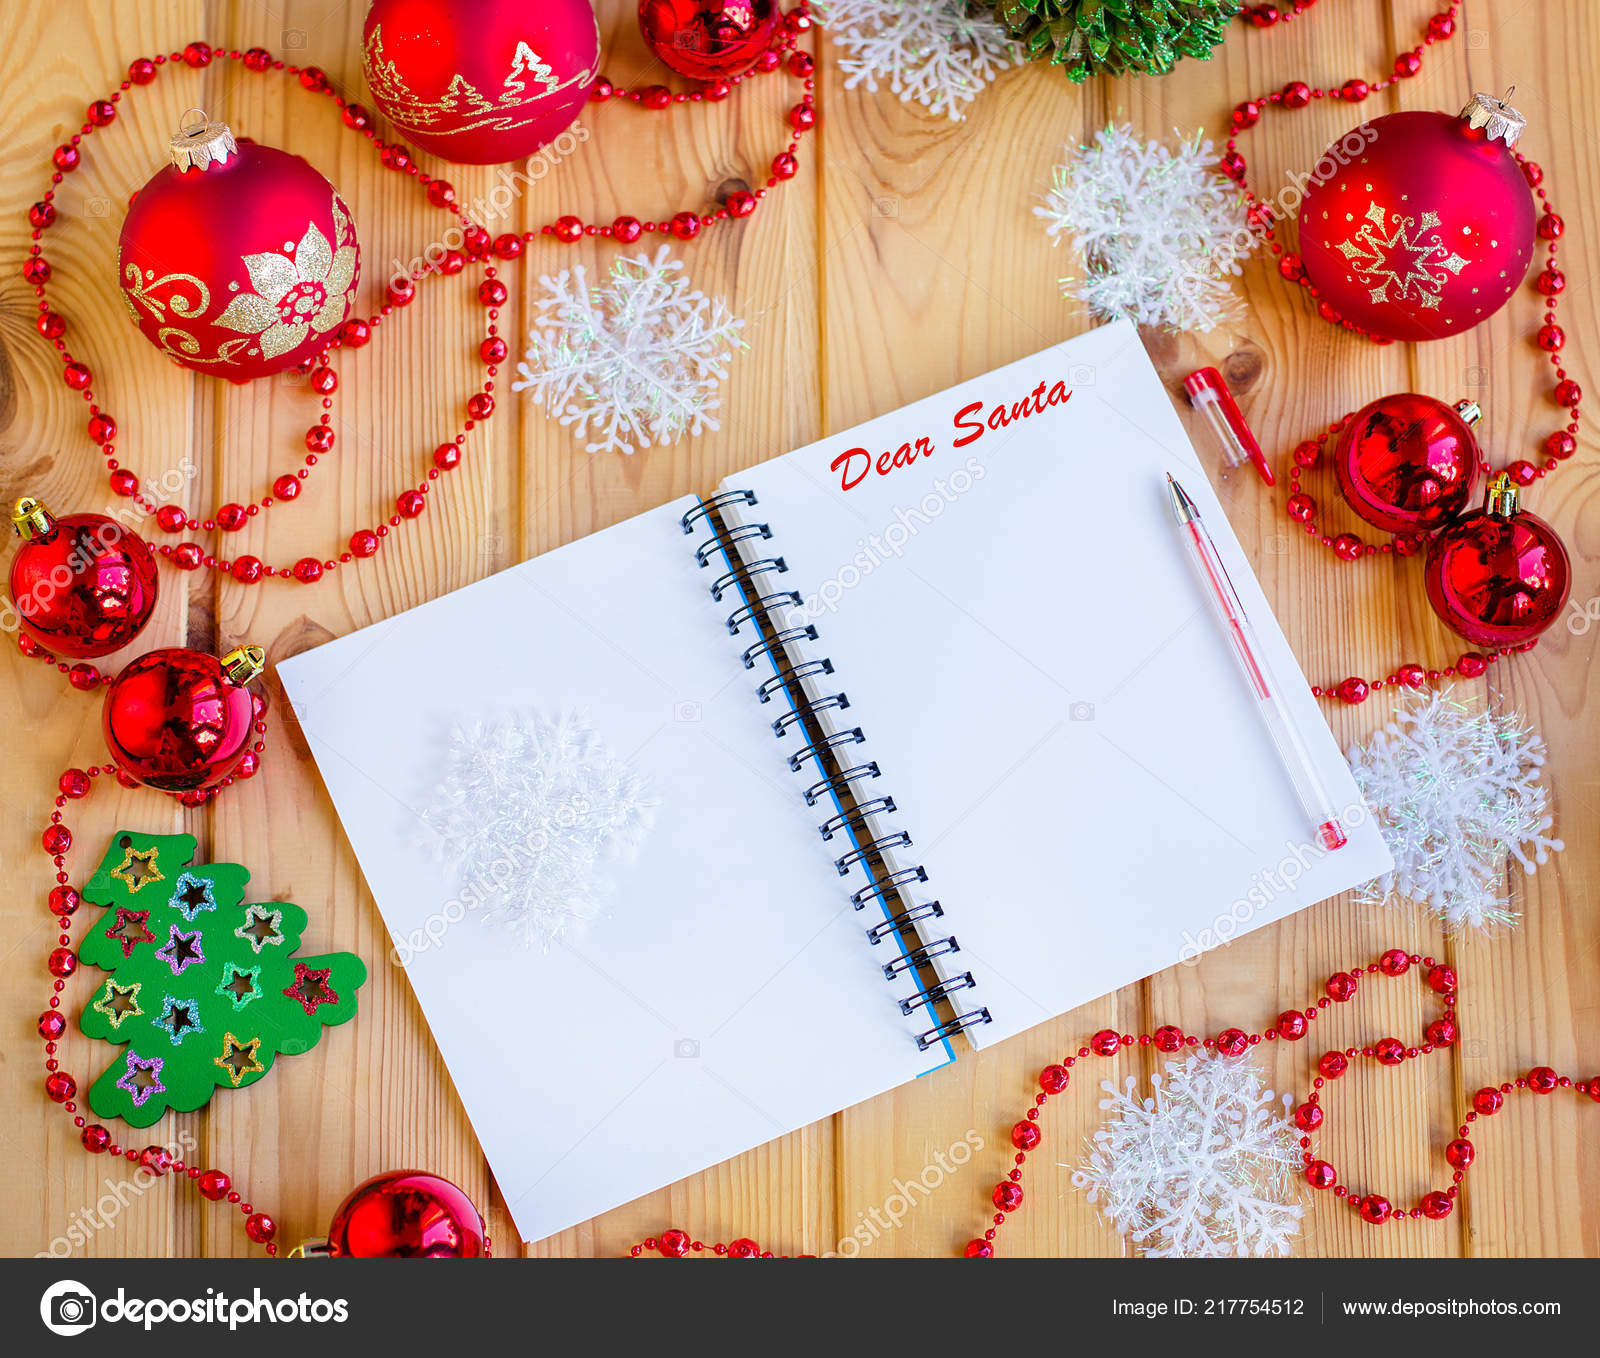 Child Writes Letter Santa Claus Table Christmas Tree Decorations View — Stock Photo